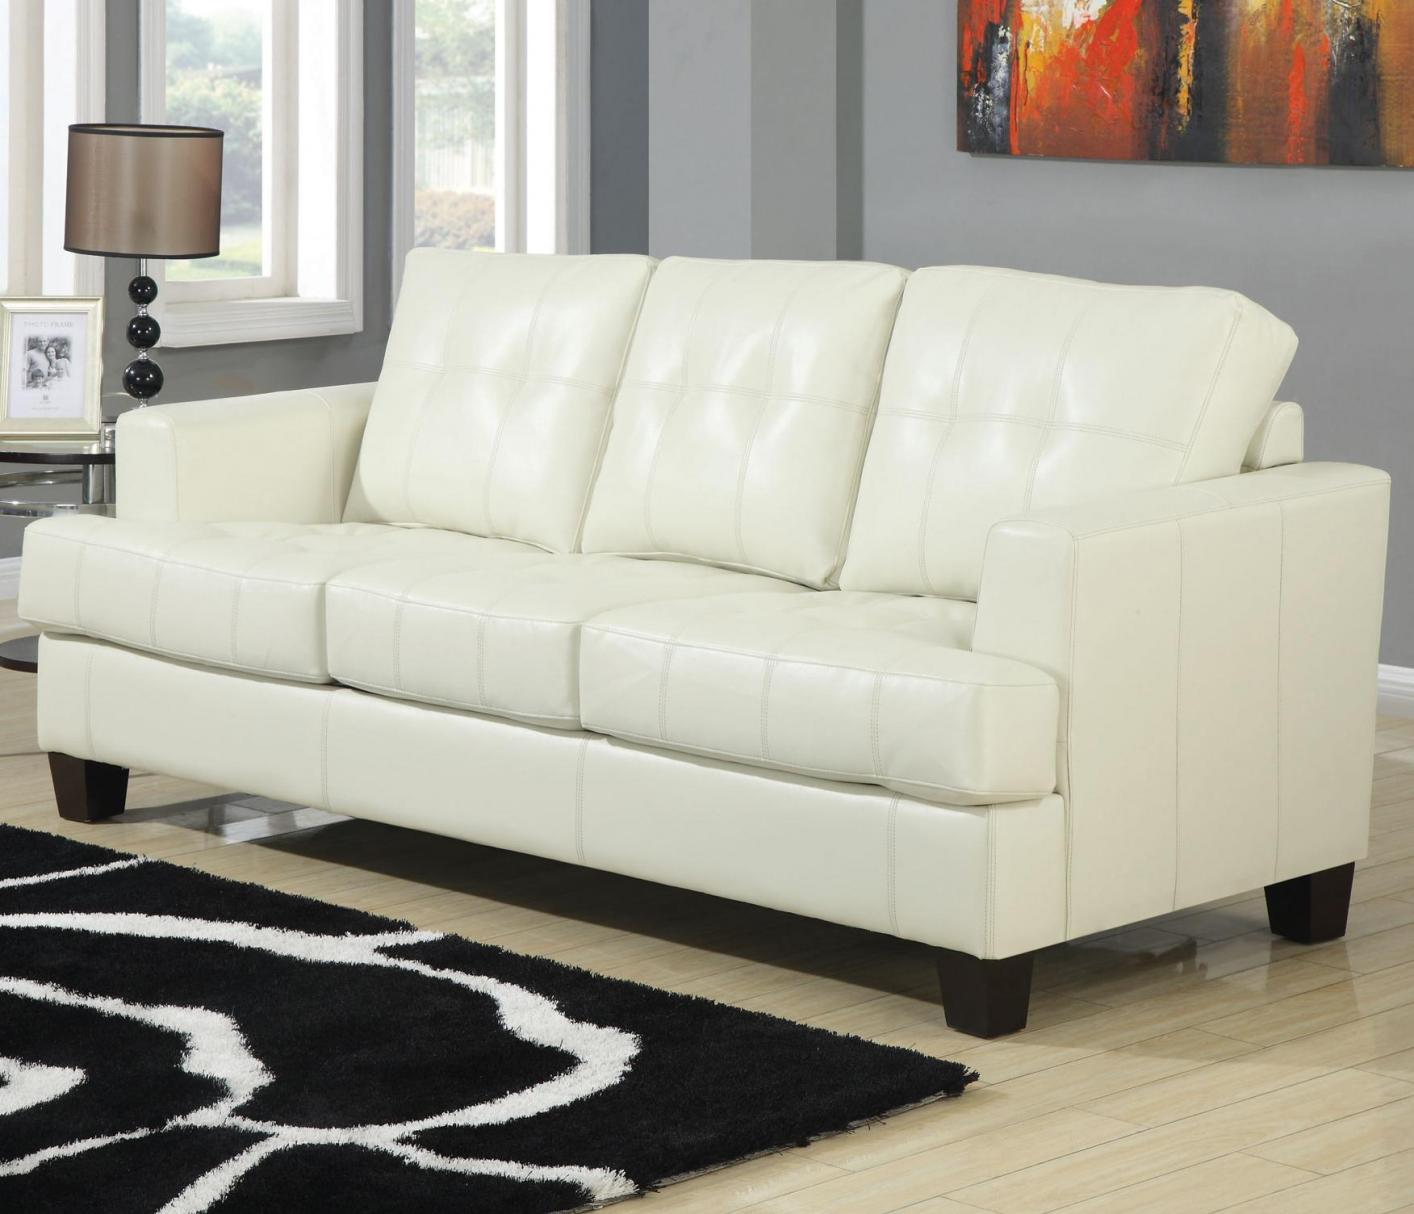 Samuel Beige Leather Sofa Bed  StealASofa Furniture Outlet Los Angeles CA